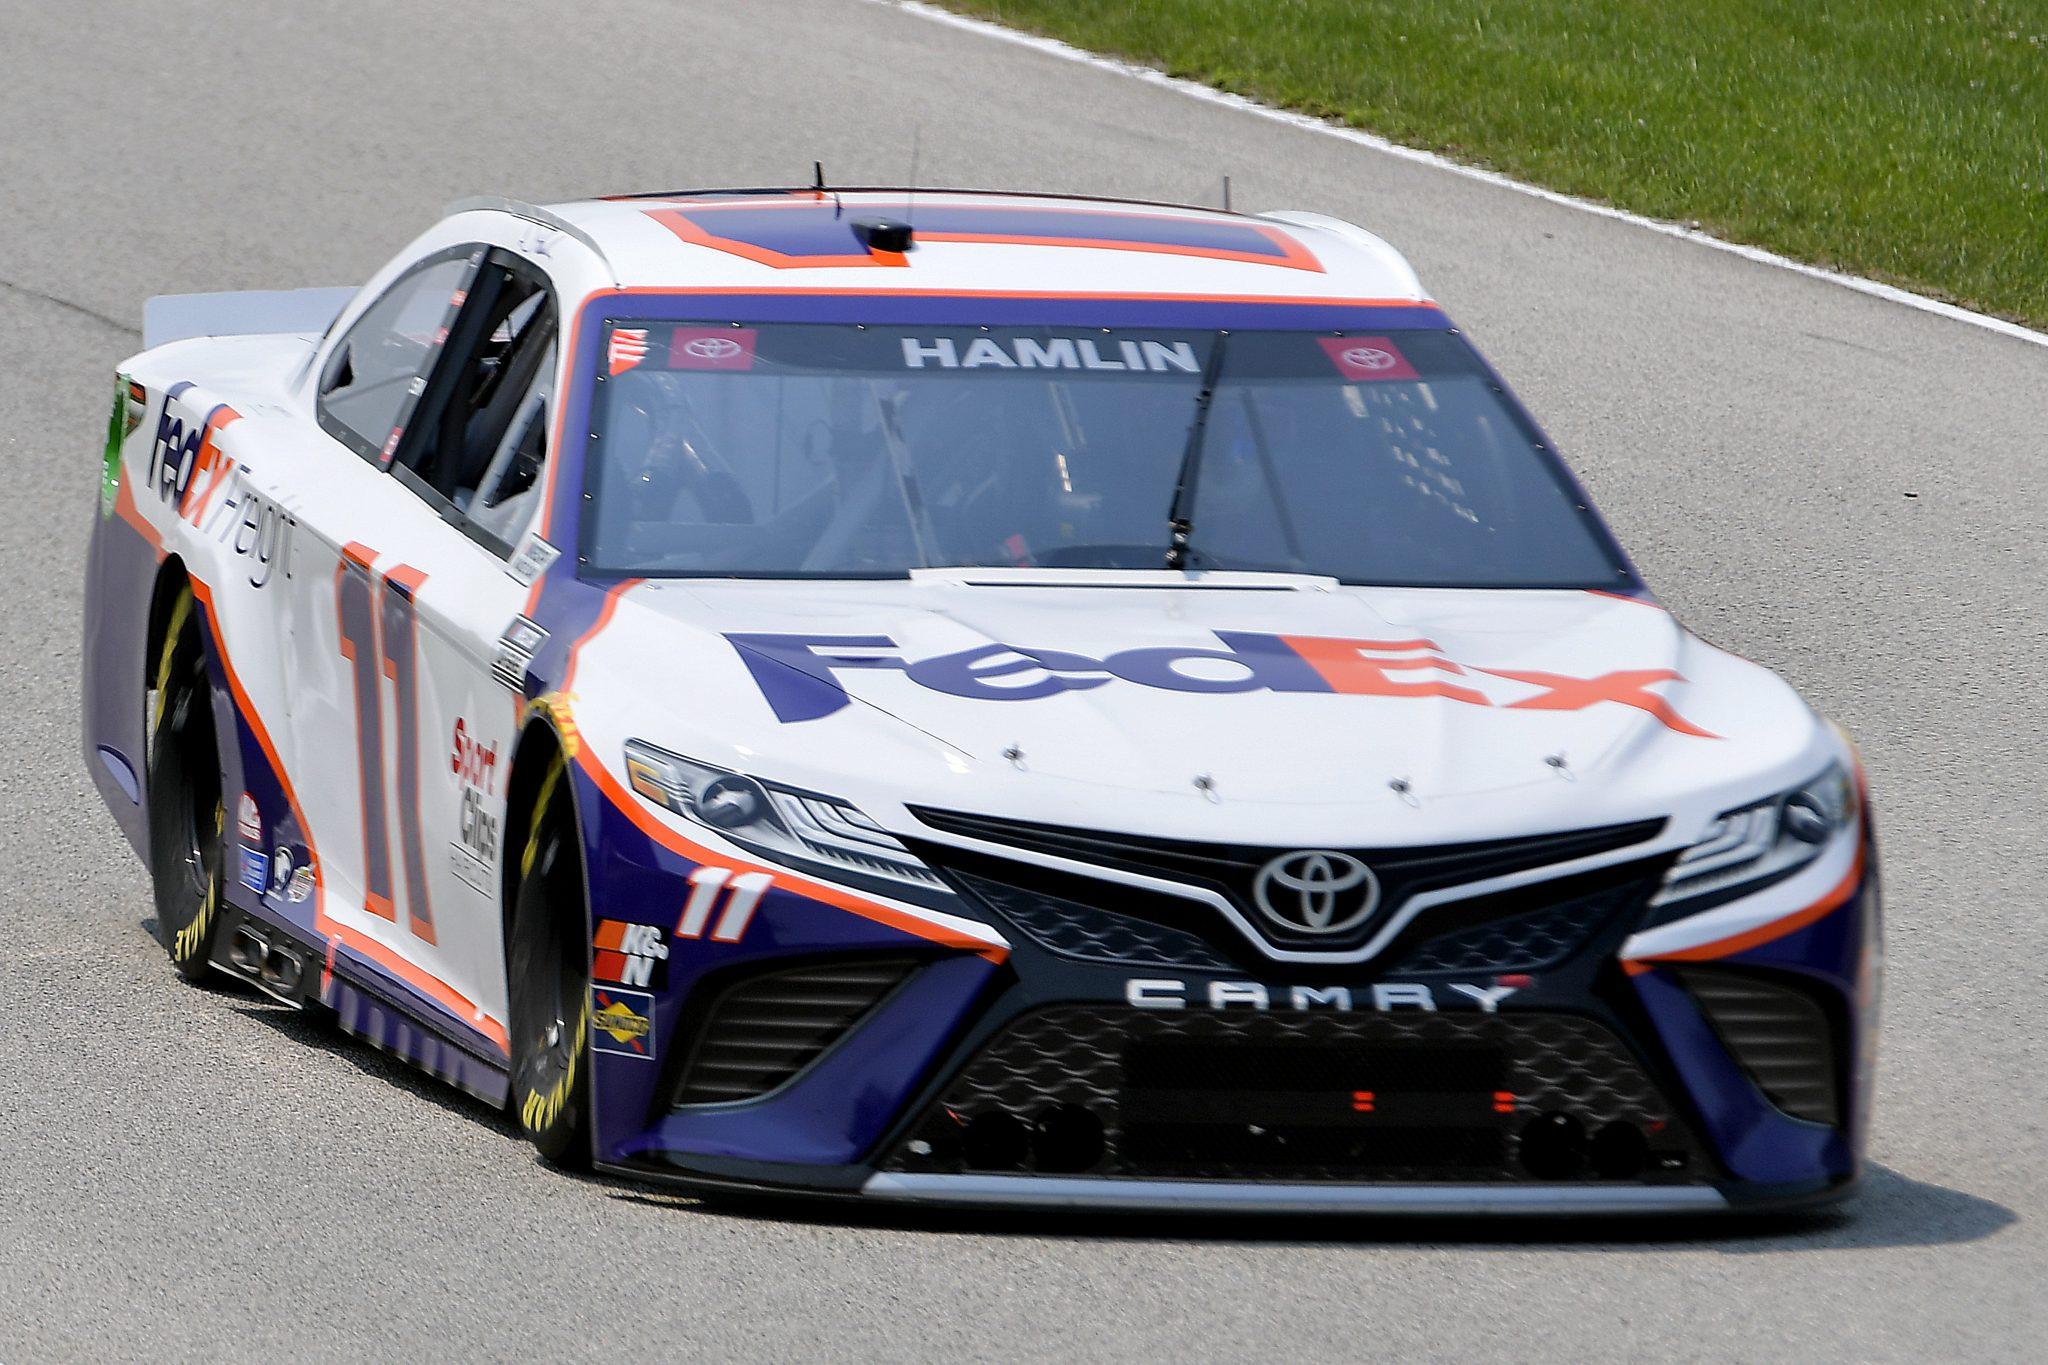 ELKHART LAKE, WISCONSIN - JULY 03: Denny Hamlin, driver of the #11 FedEx Freight Toyota, drives during practice for the NASCAR Cup Series Jockey Made in America 250 Presented by Kwik Trip at Road America on July 03, 2021 in Elkhart Lake, Wisconsin. (Photo by Logan Riely/Getty Images)   Getty Images